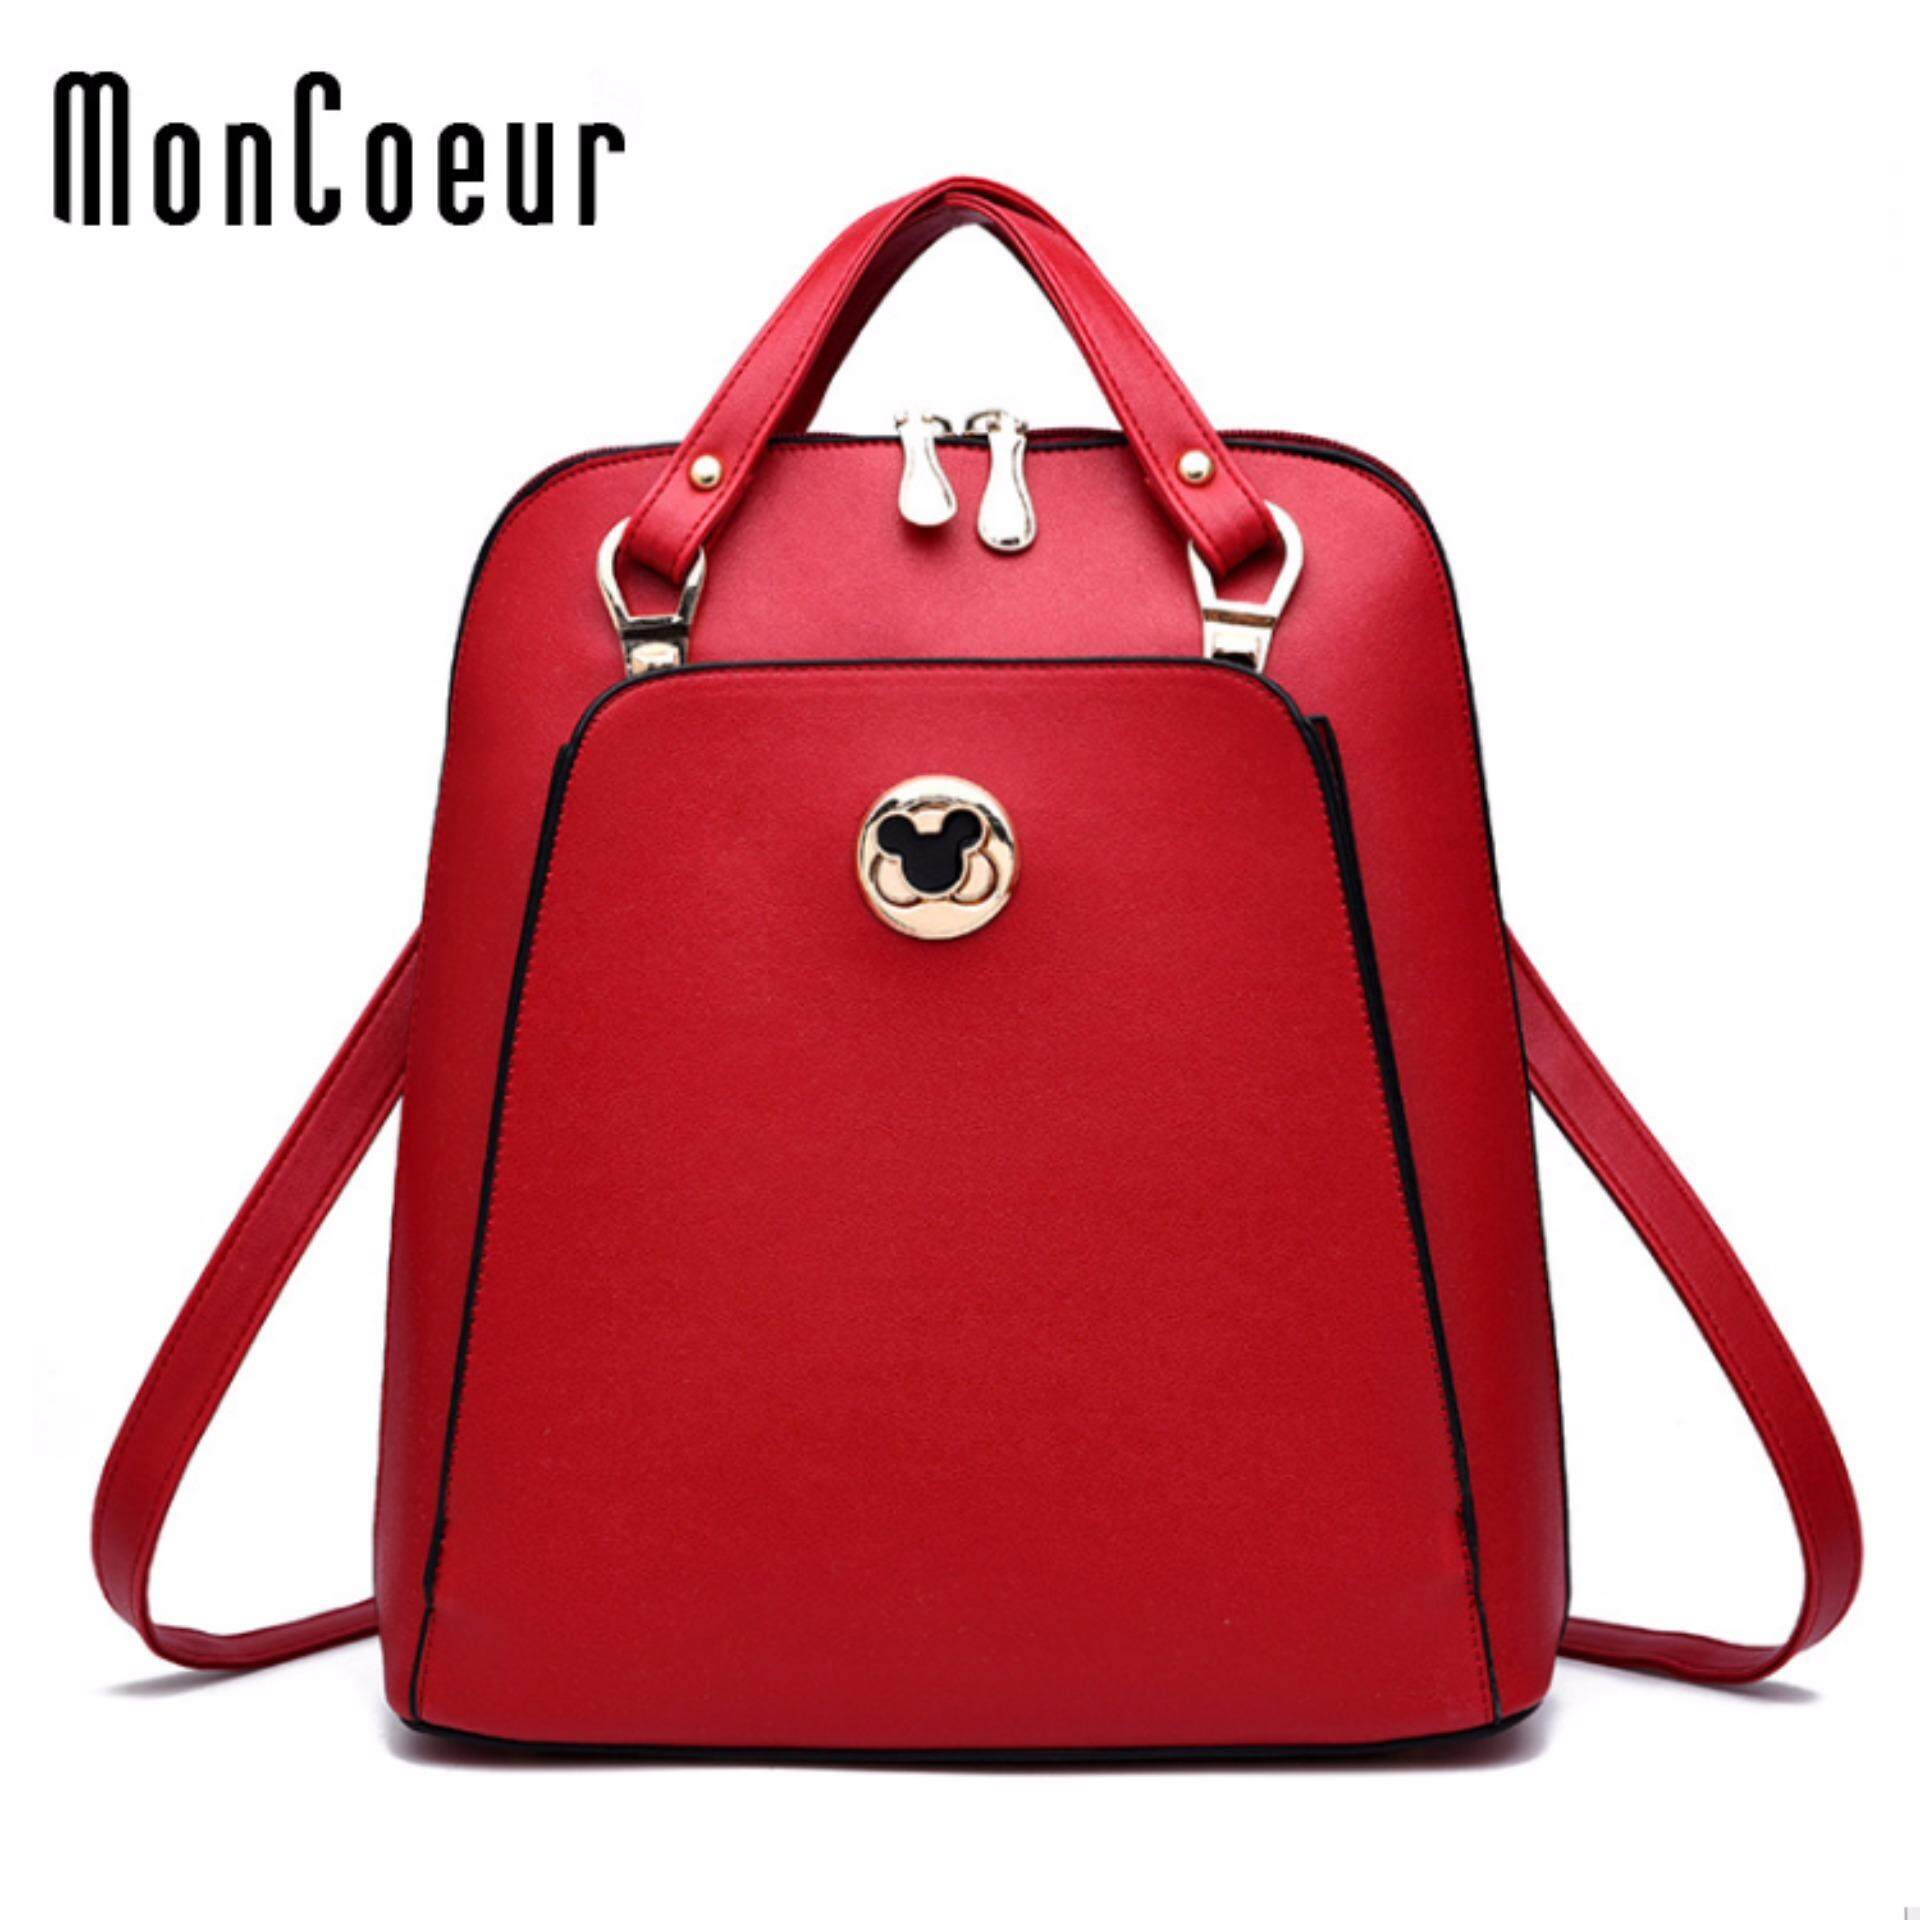 Moncoeur 5002 Korean Design Cute Pu Leather Backpack (Red ...